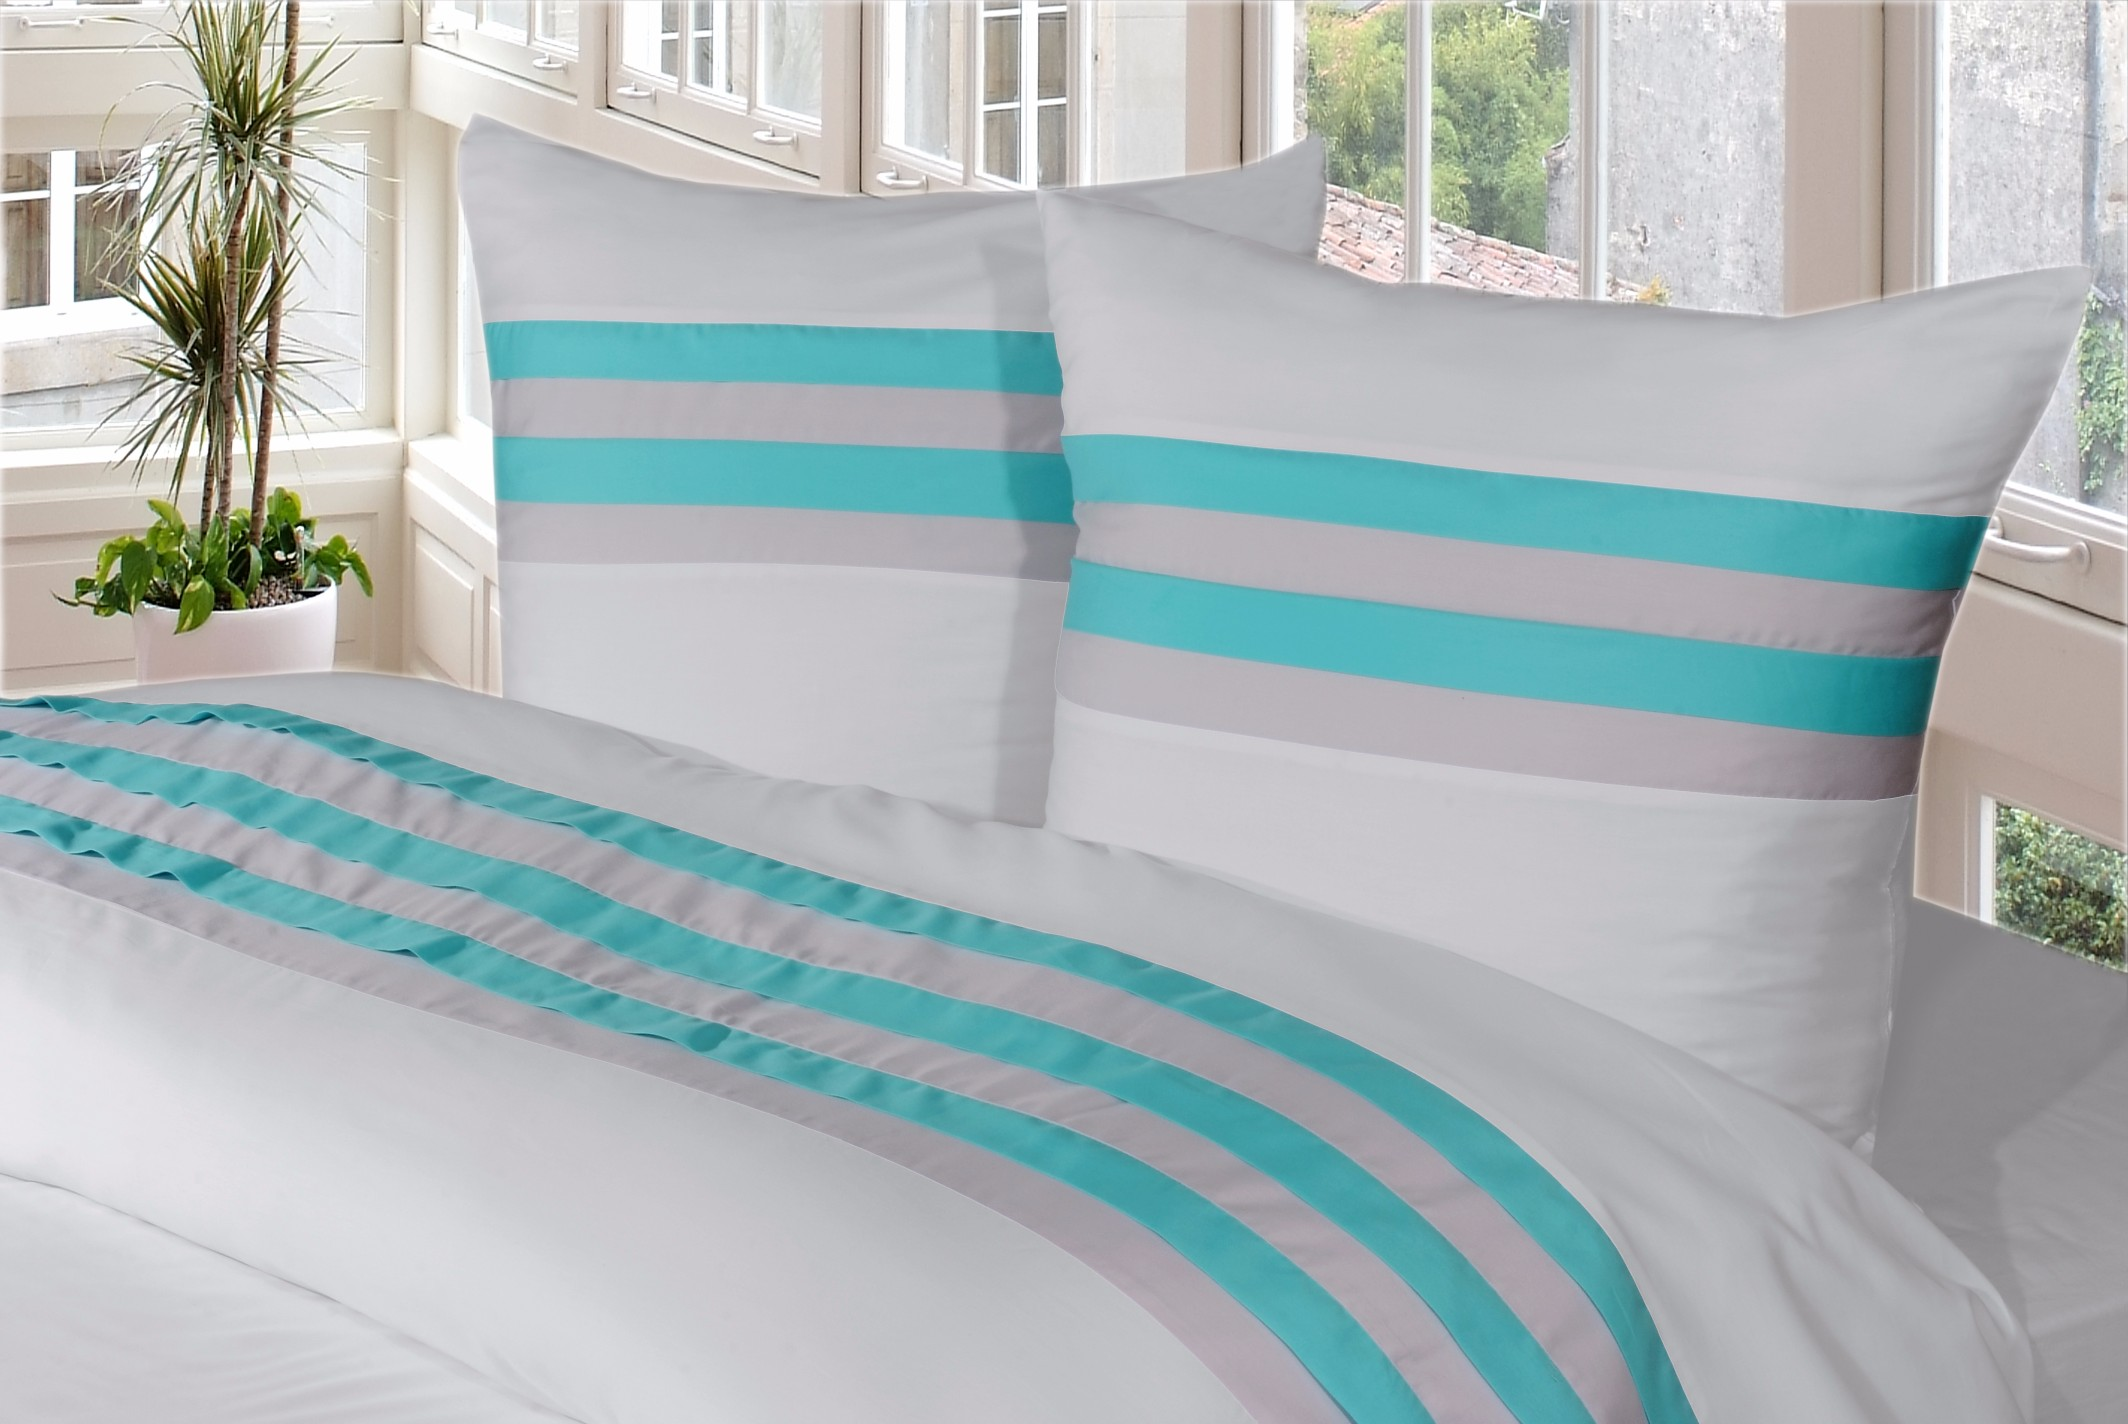 housse de couette turquoise housse de couette et cache. Black Bedroom Furniture Sets. Home Design Ideas